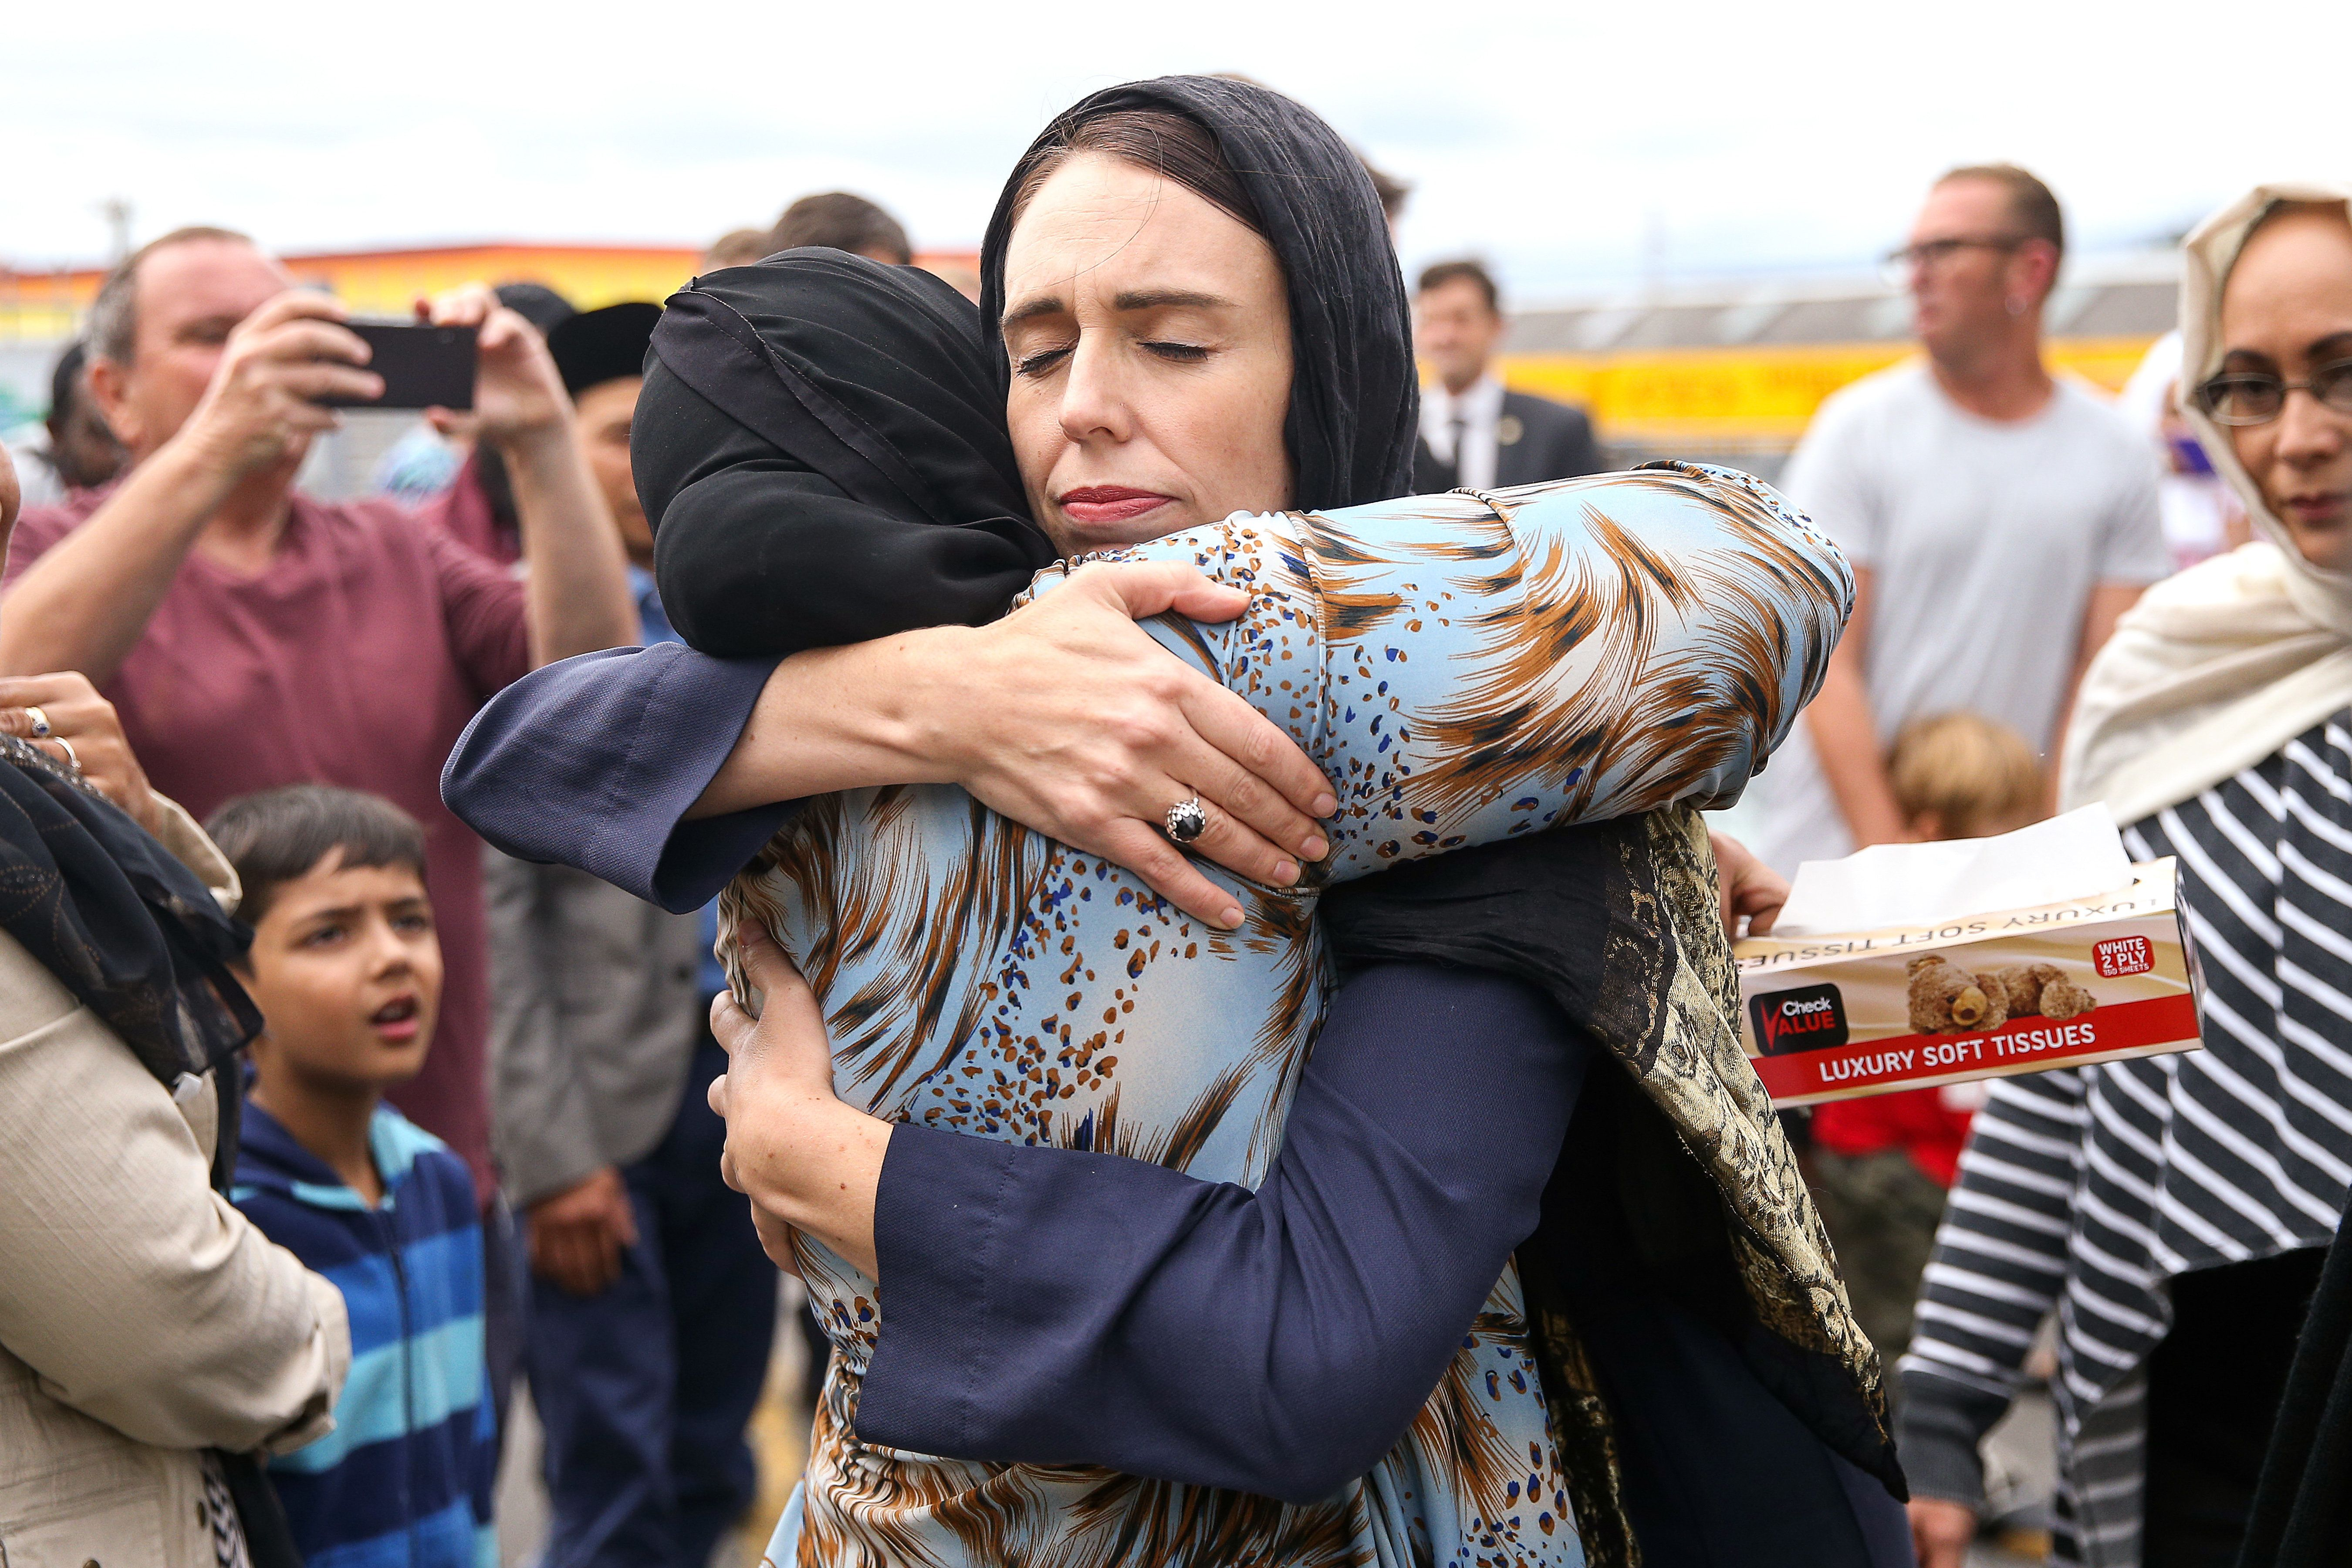 New Zealand Prime Minister Jacinda Ardern hugs a mosque-goer at the Kilbirnie Mosque on March 17, 2019 in Wellington, New Zea